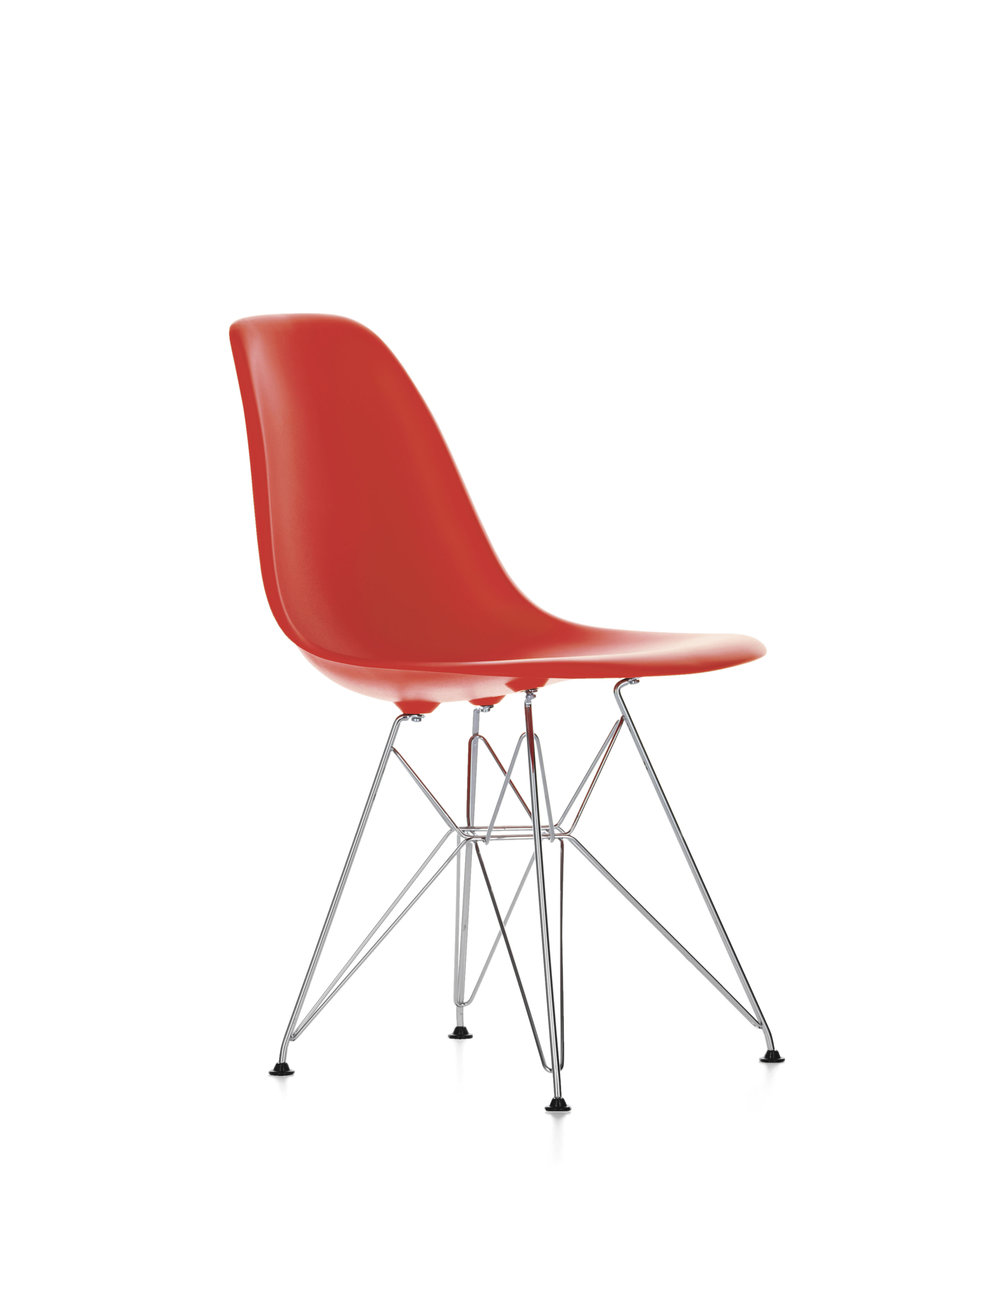 Eames Plastic Side Chair DSR_84991_master.jpg